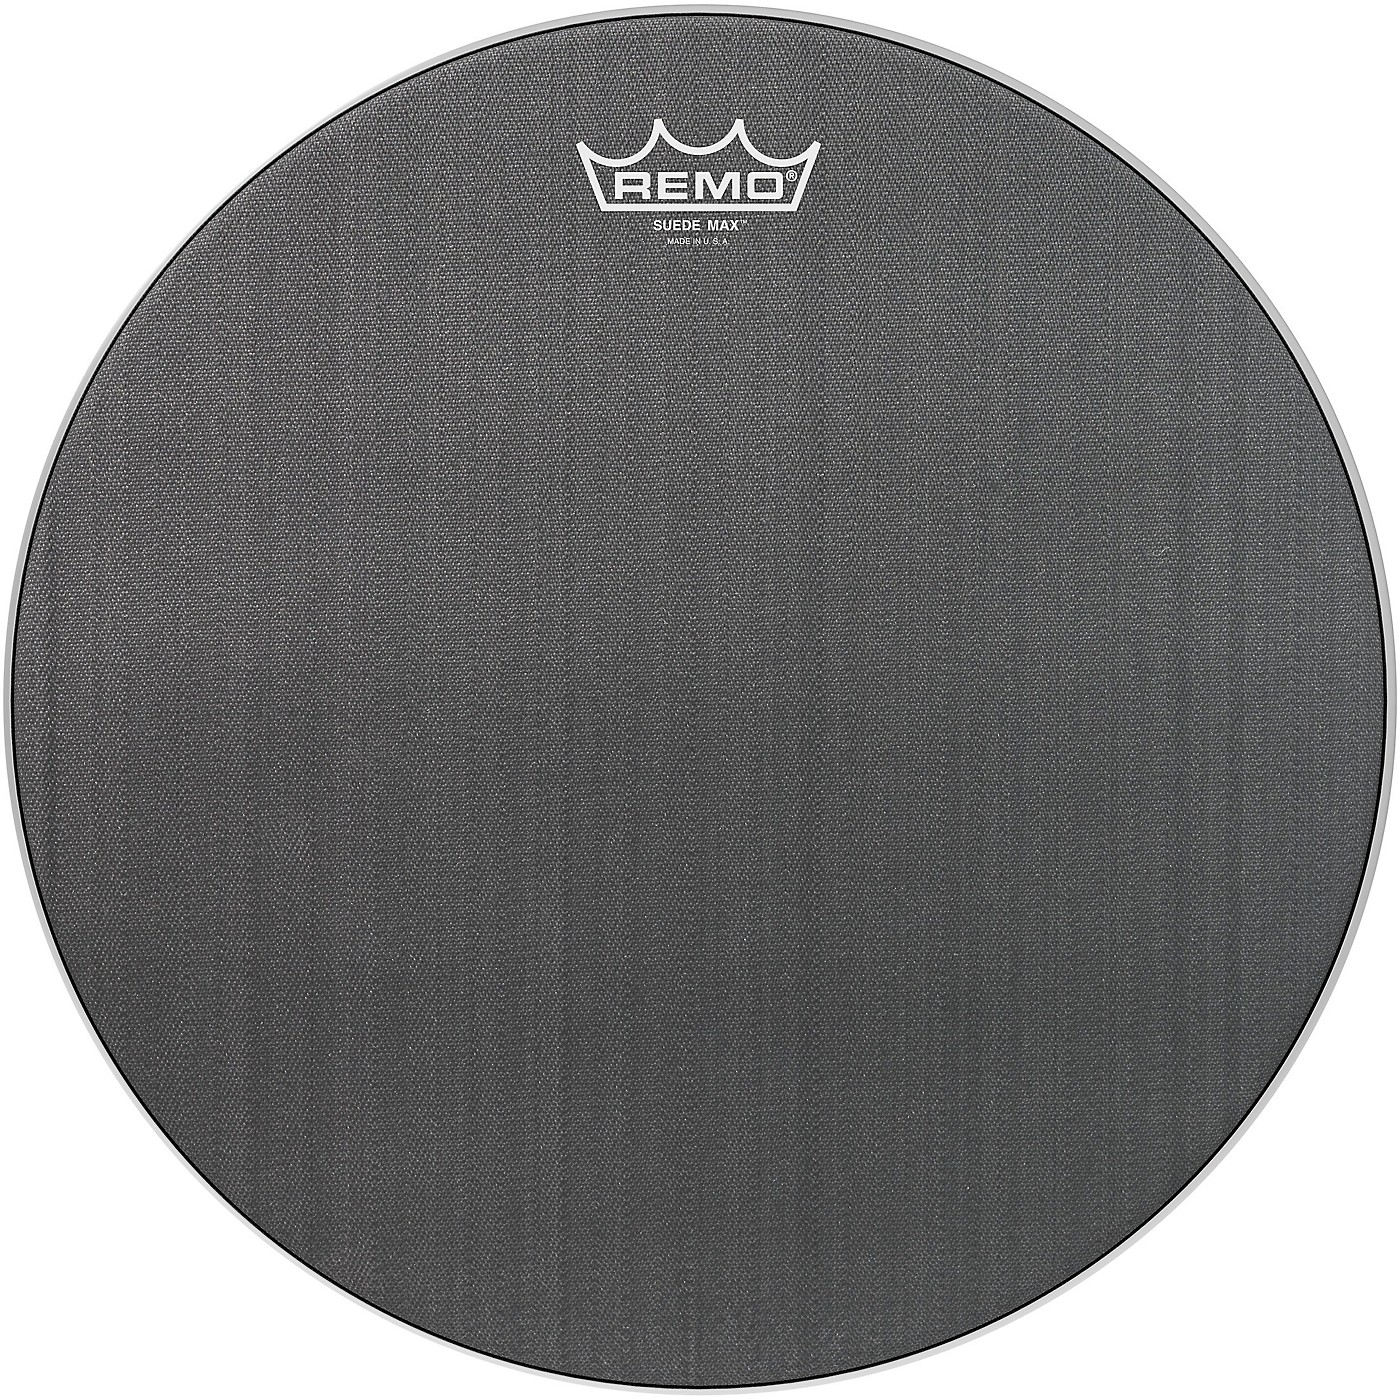 Remo Suede Max Drum Head thumbnail